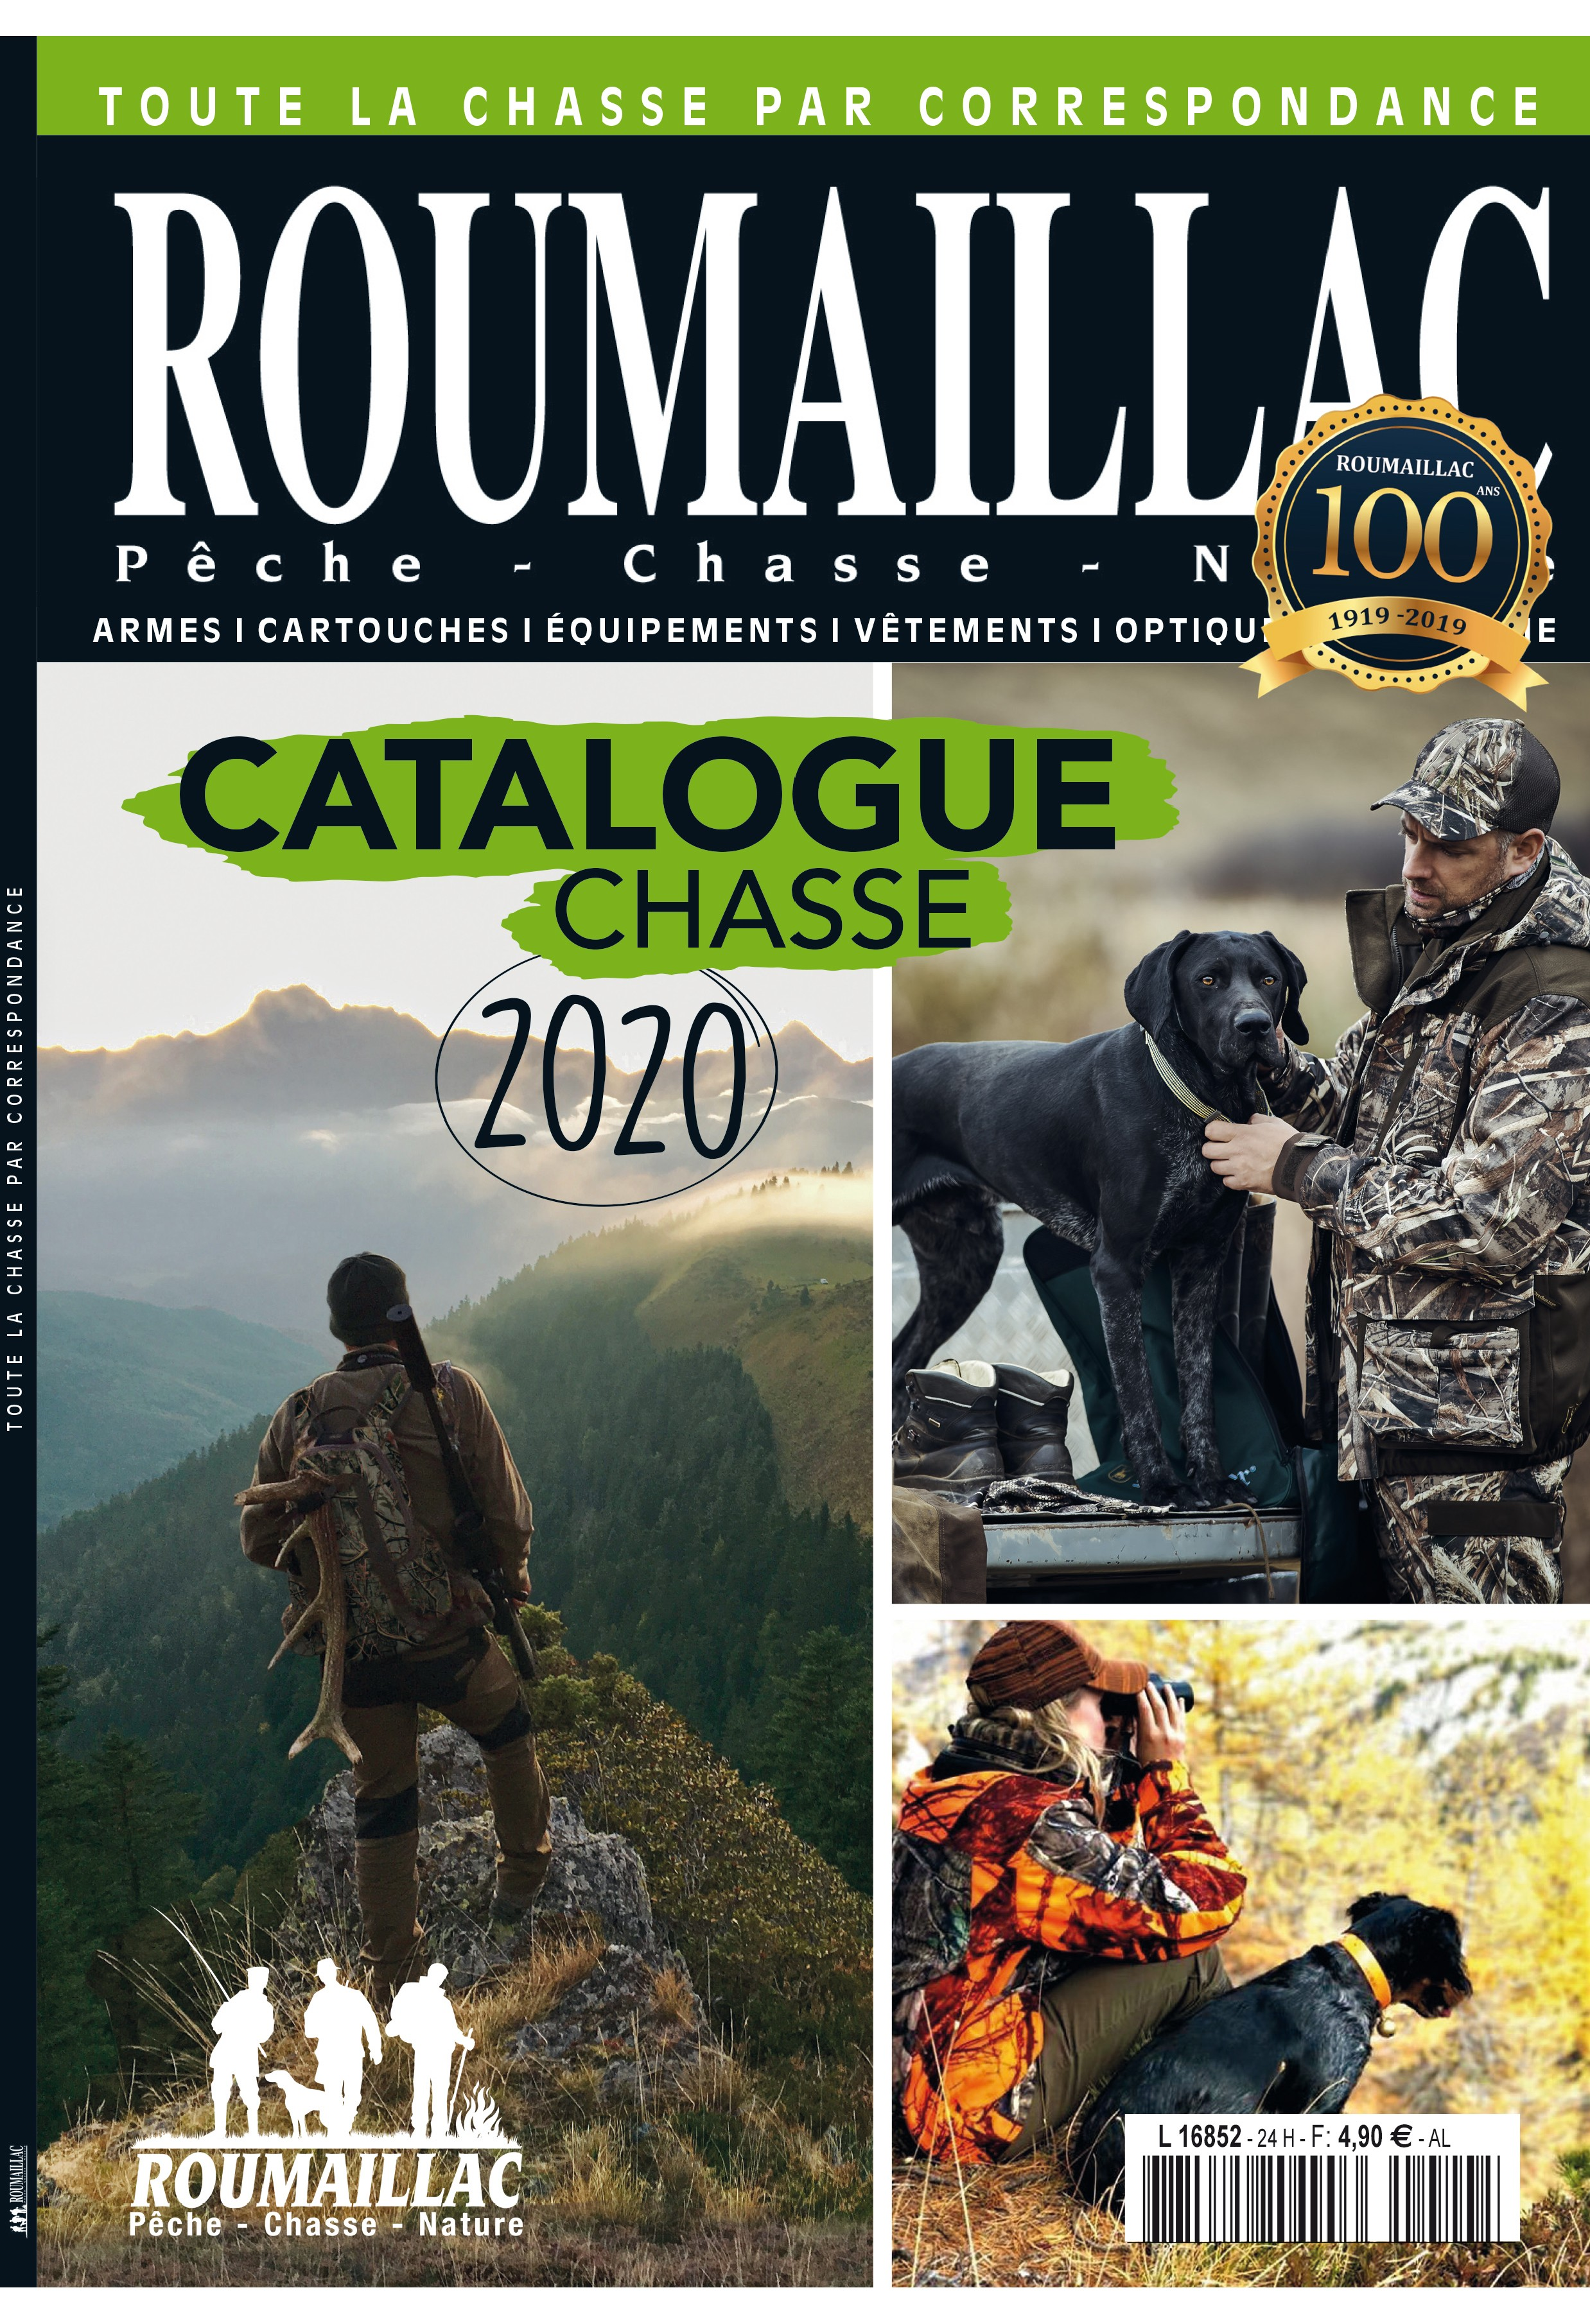 Catalogue chasse 2020